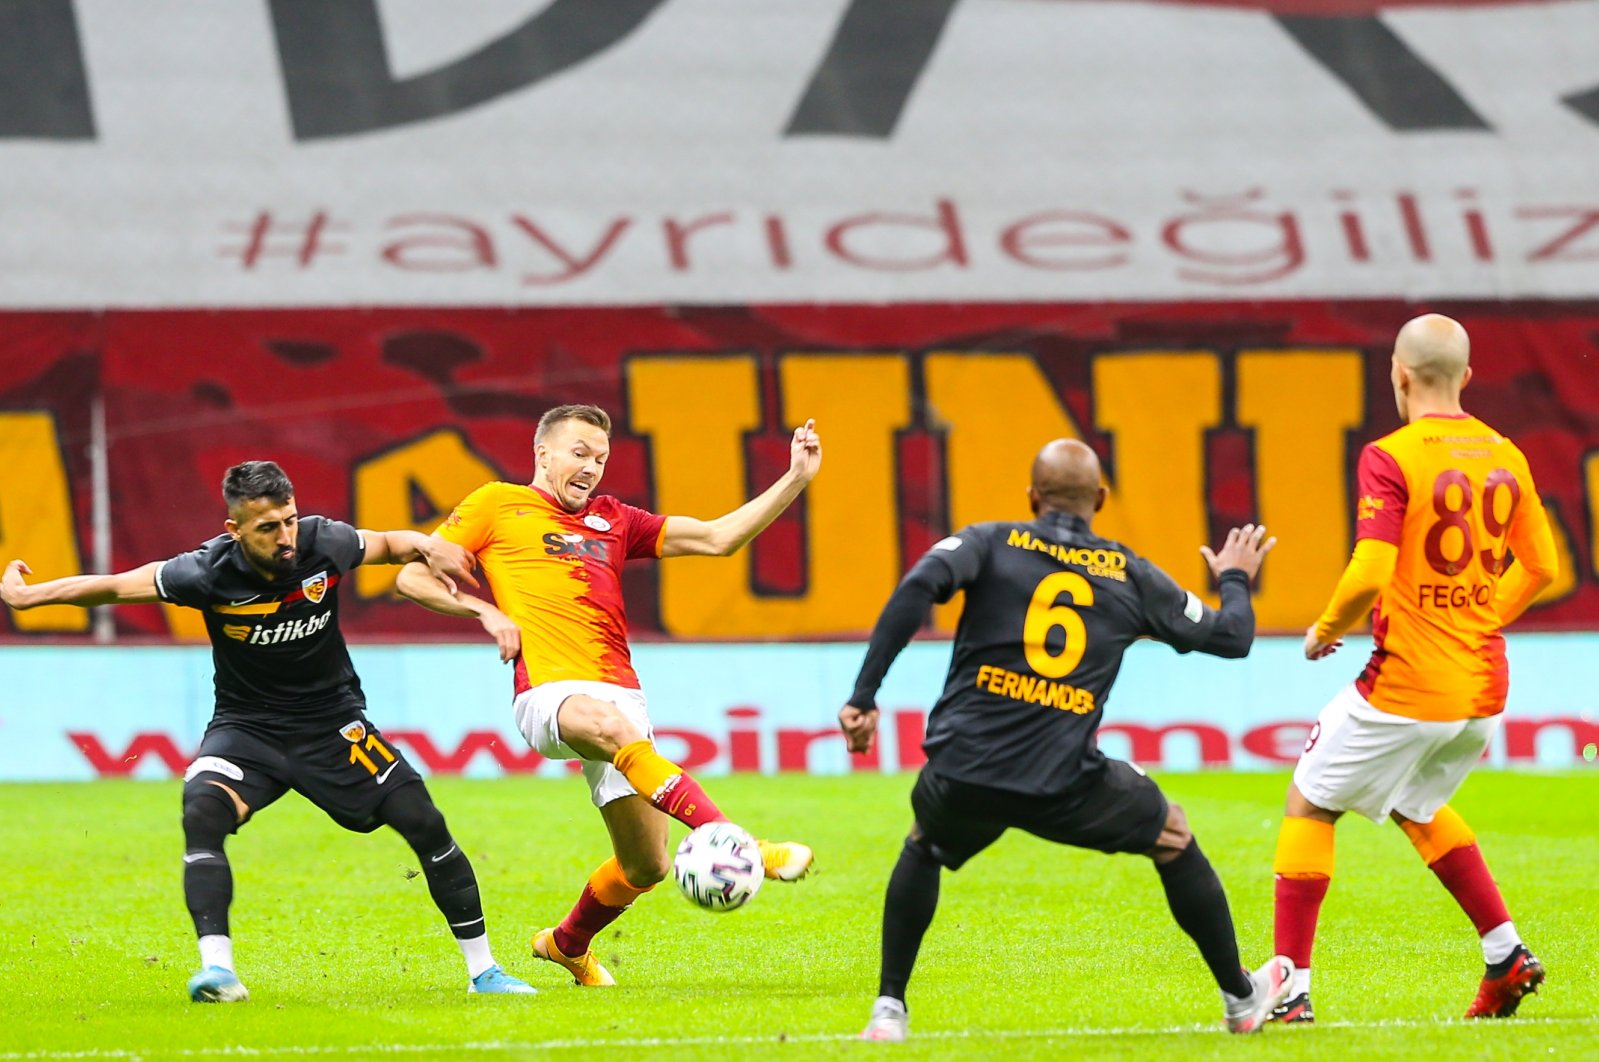 Muğdat Çelik (L) in action against Galatasaray's Martin Linnes (2nd L) during the match in Istanbul, Turkey, Nov. 24, 2020. (AA Photo)